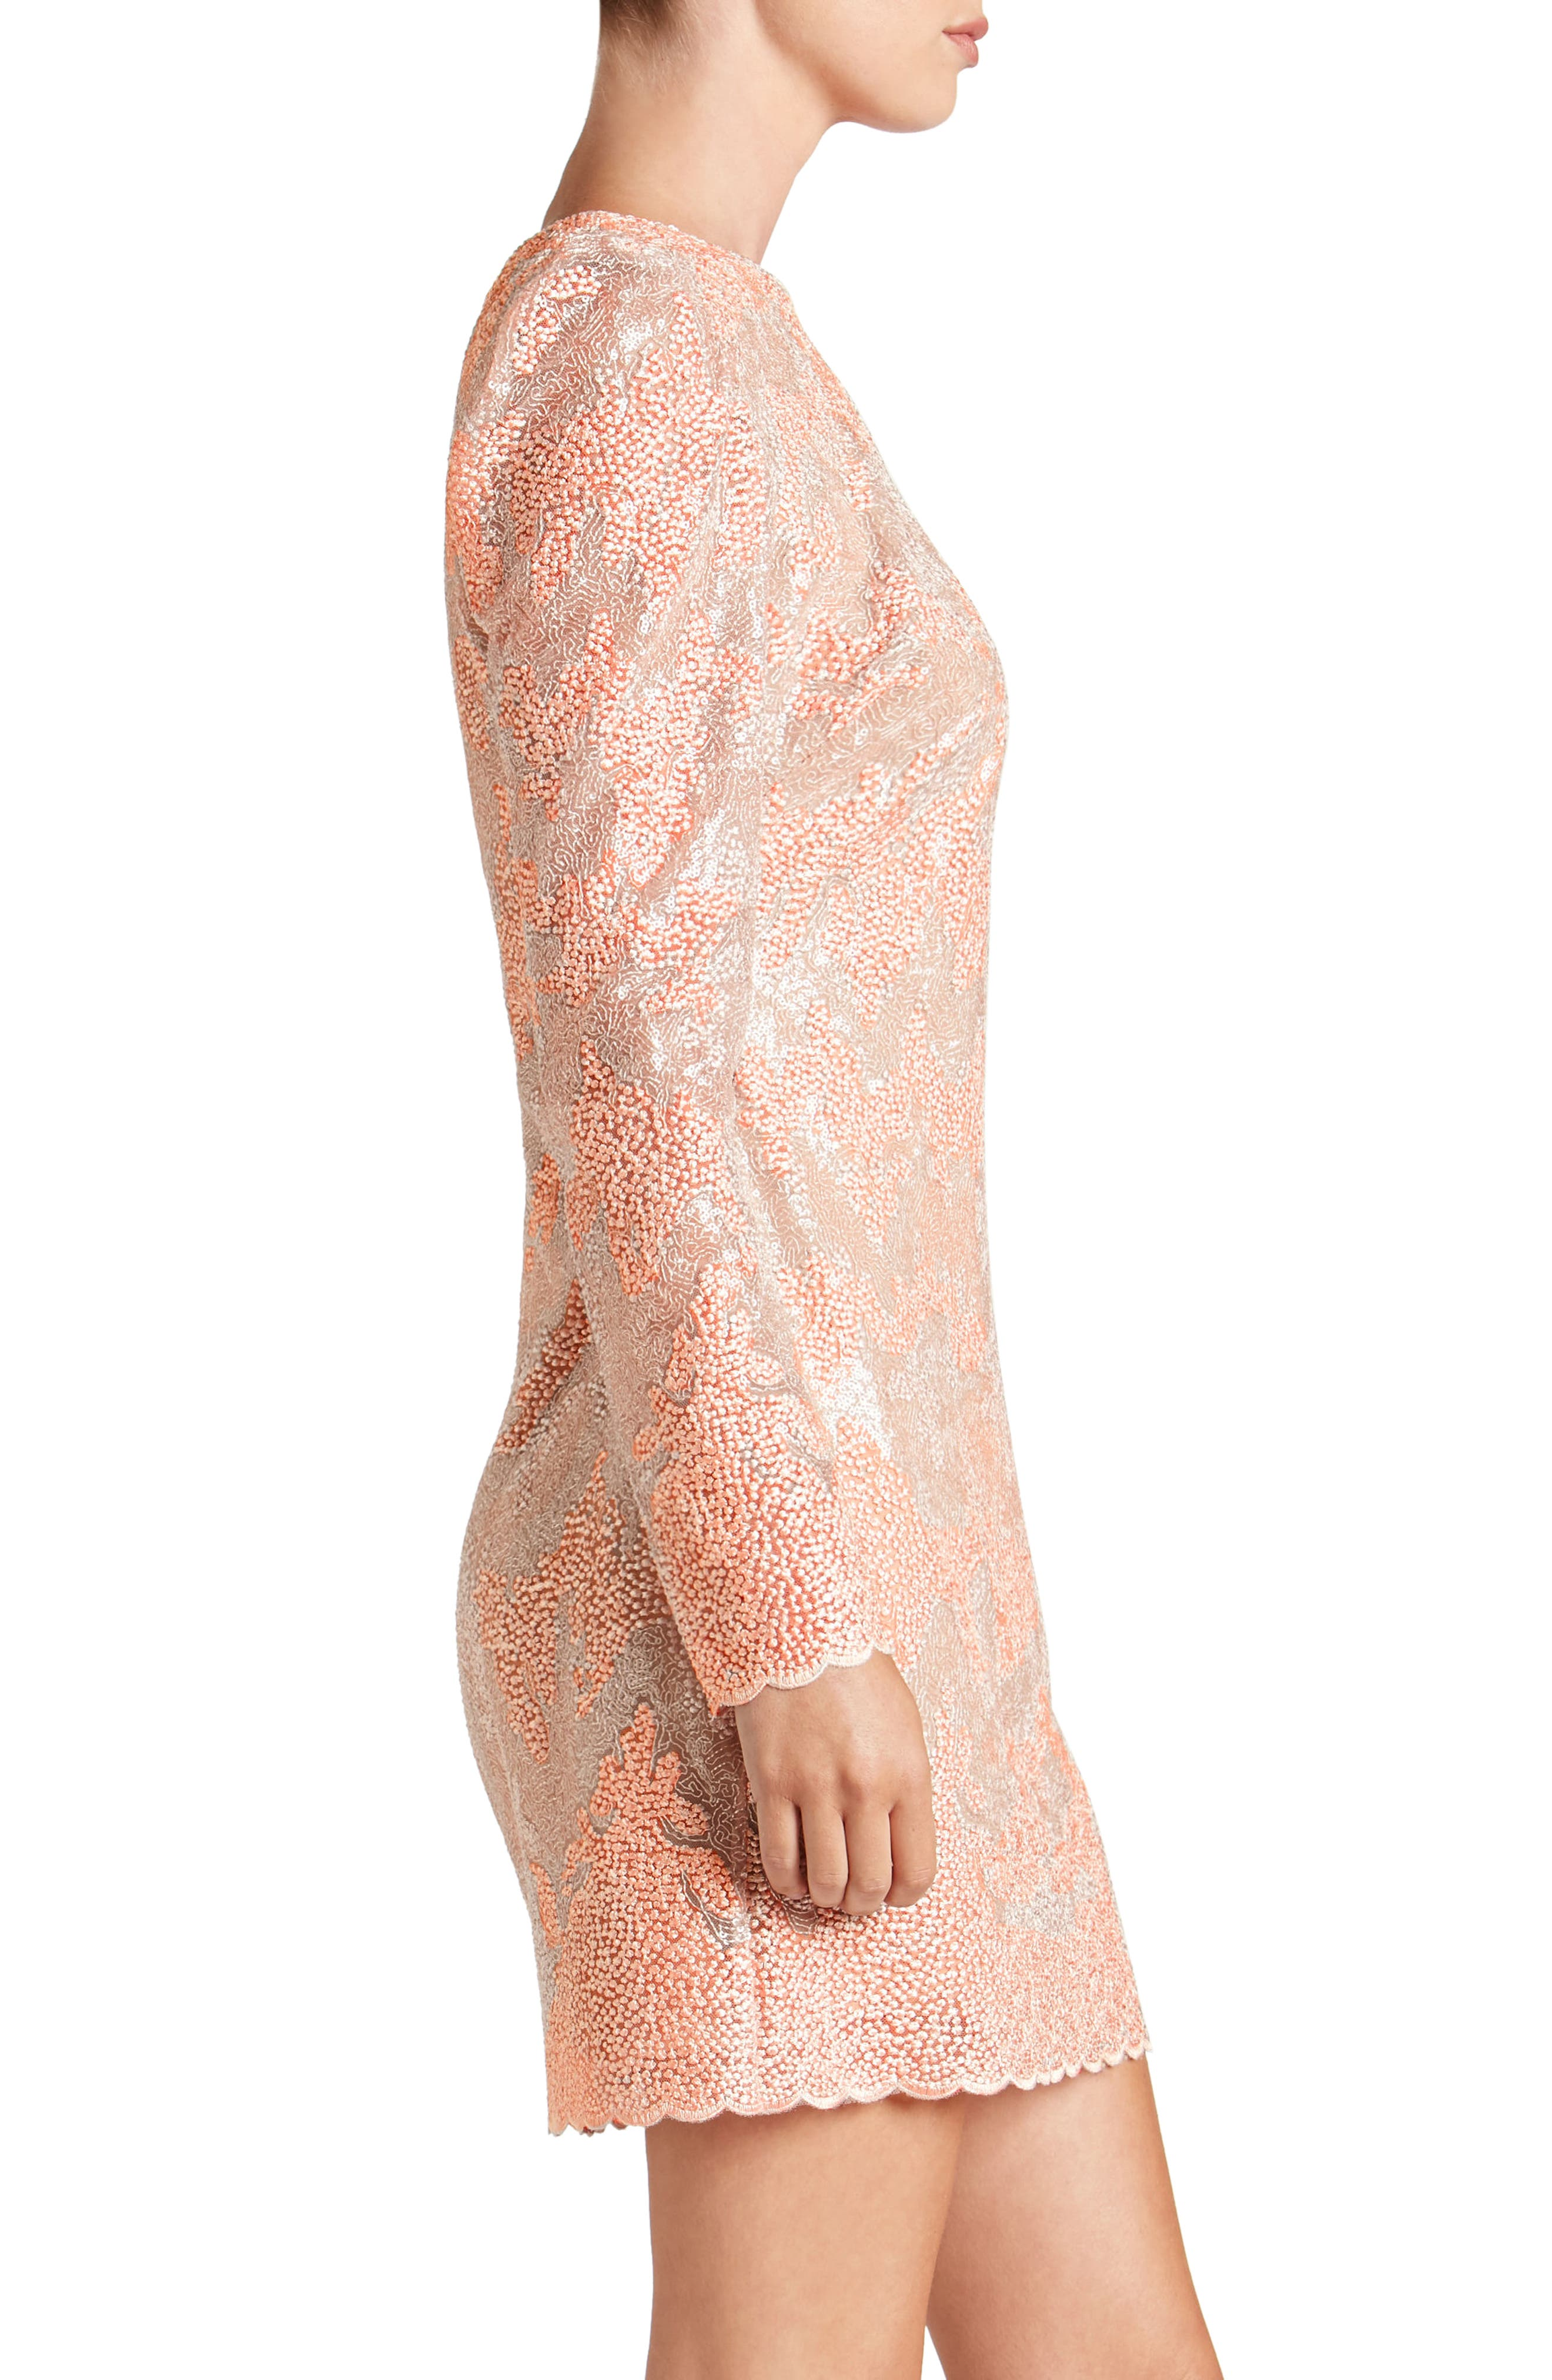 Aubry Sequin Embellished Shift Dress,                             Alternate thumbnail 3, color,                             Blush